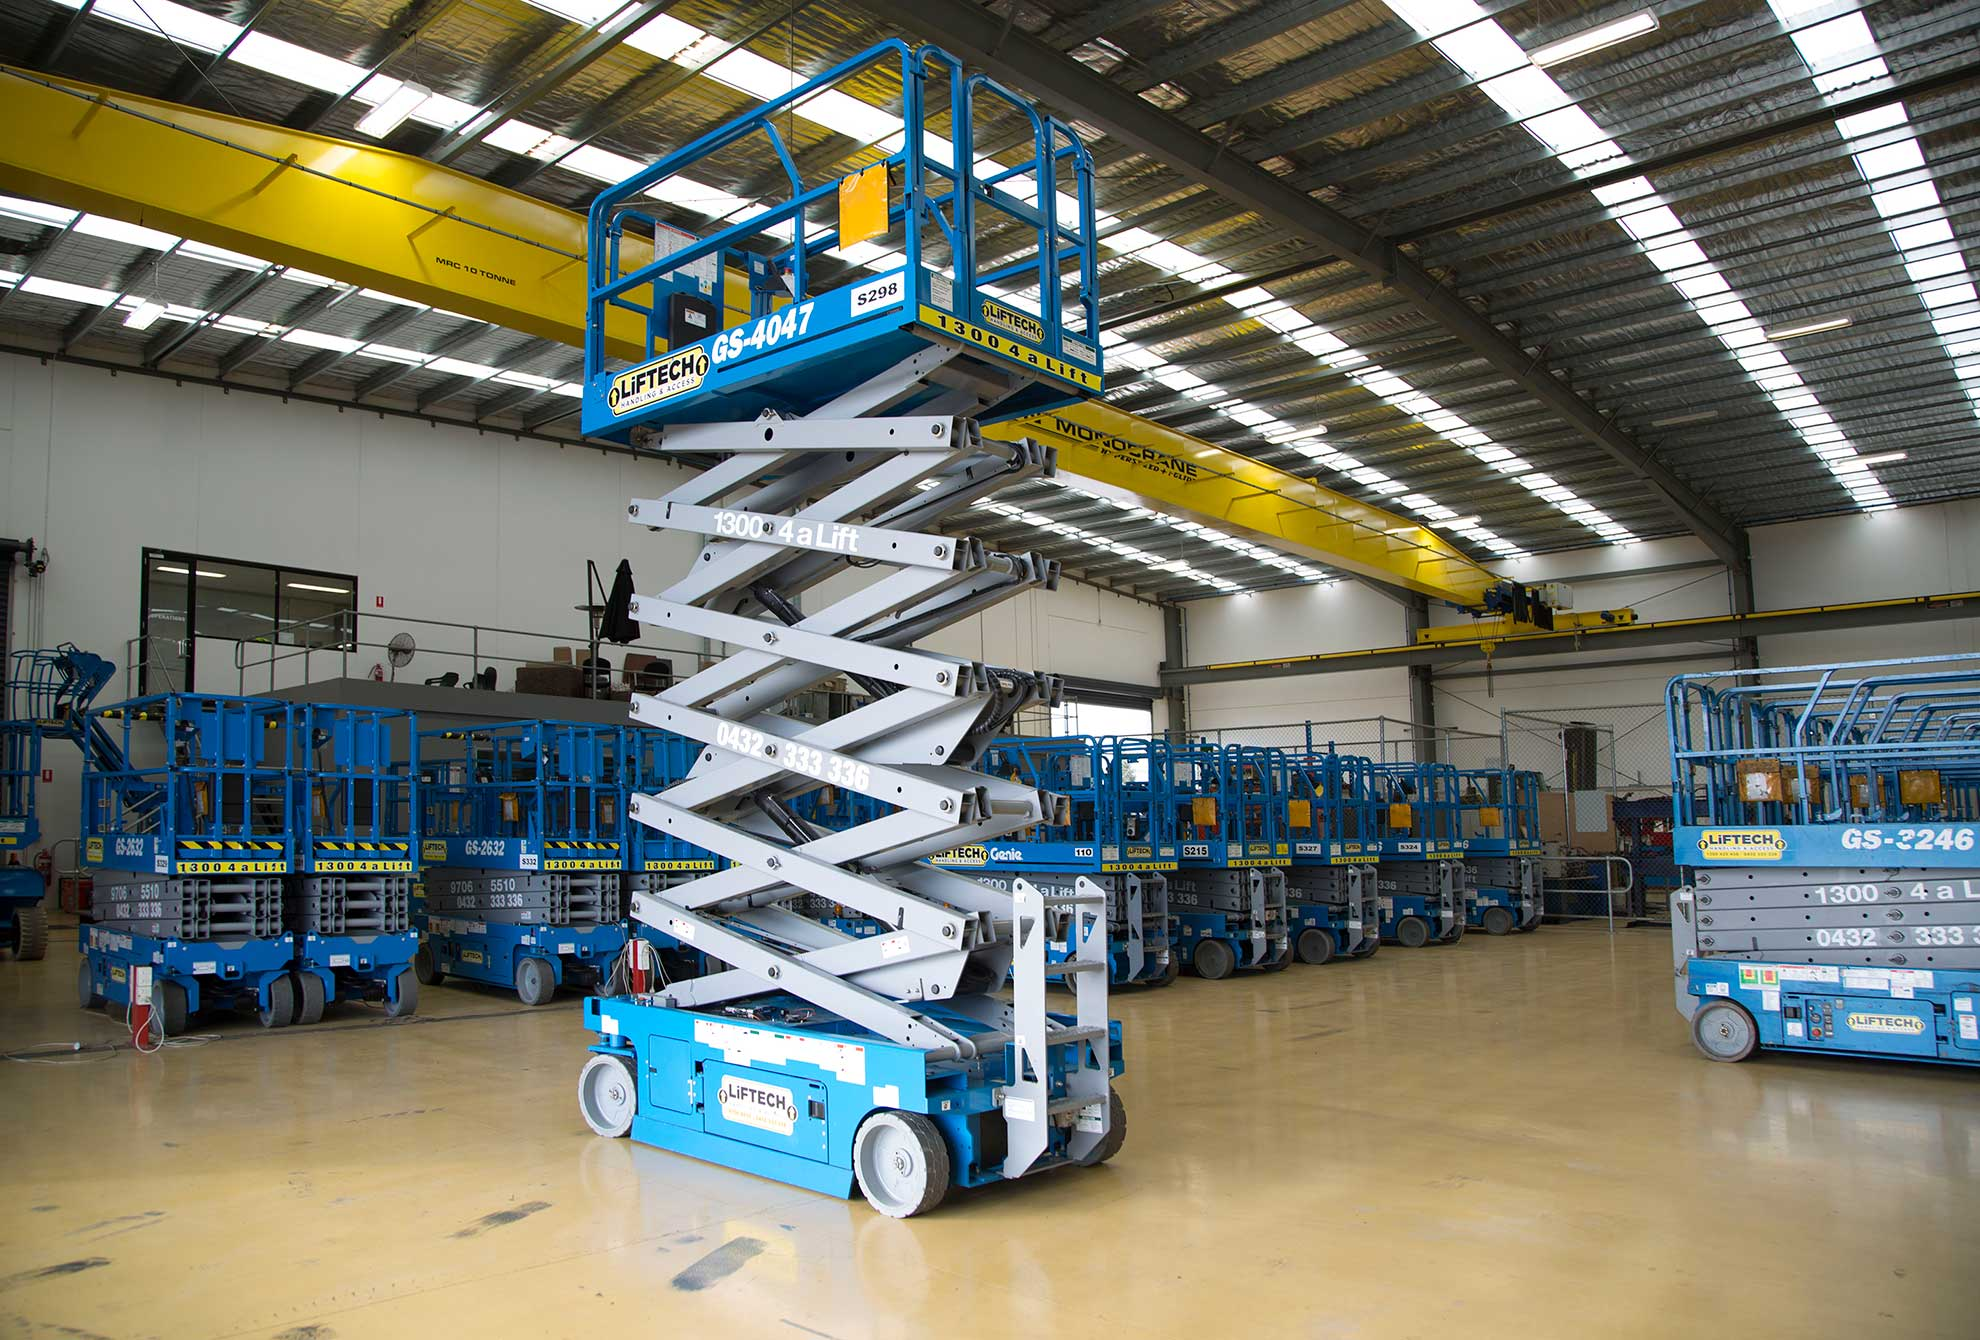 12m Standard Scissor Lift for Rental in Melbourne